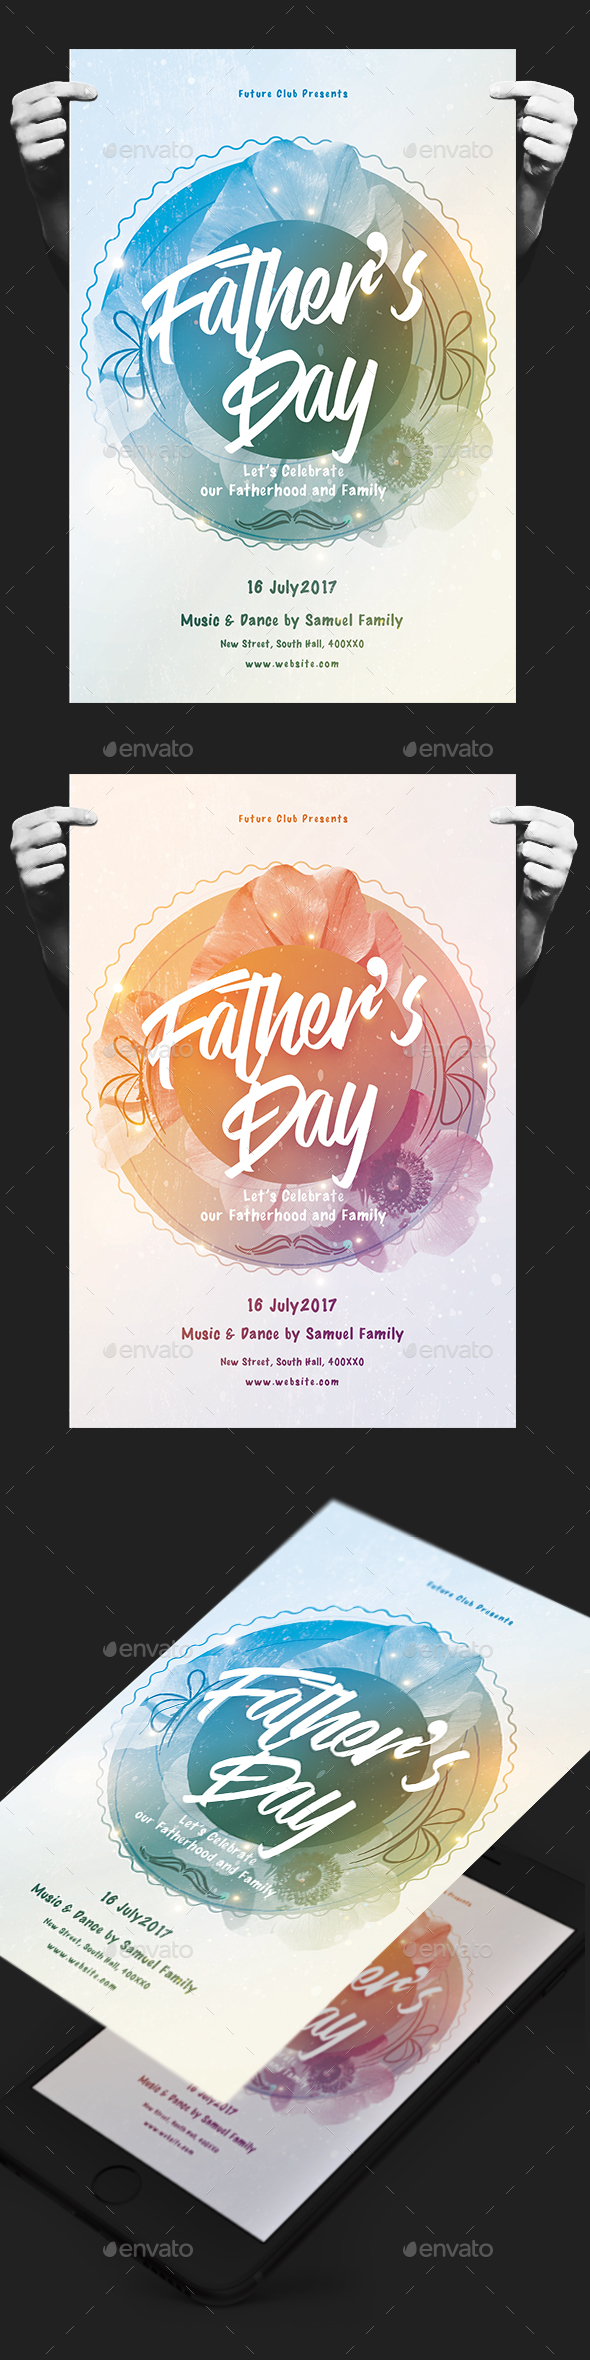 Father's Day Celebration Event - Events Flyers